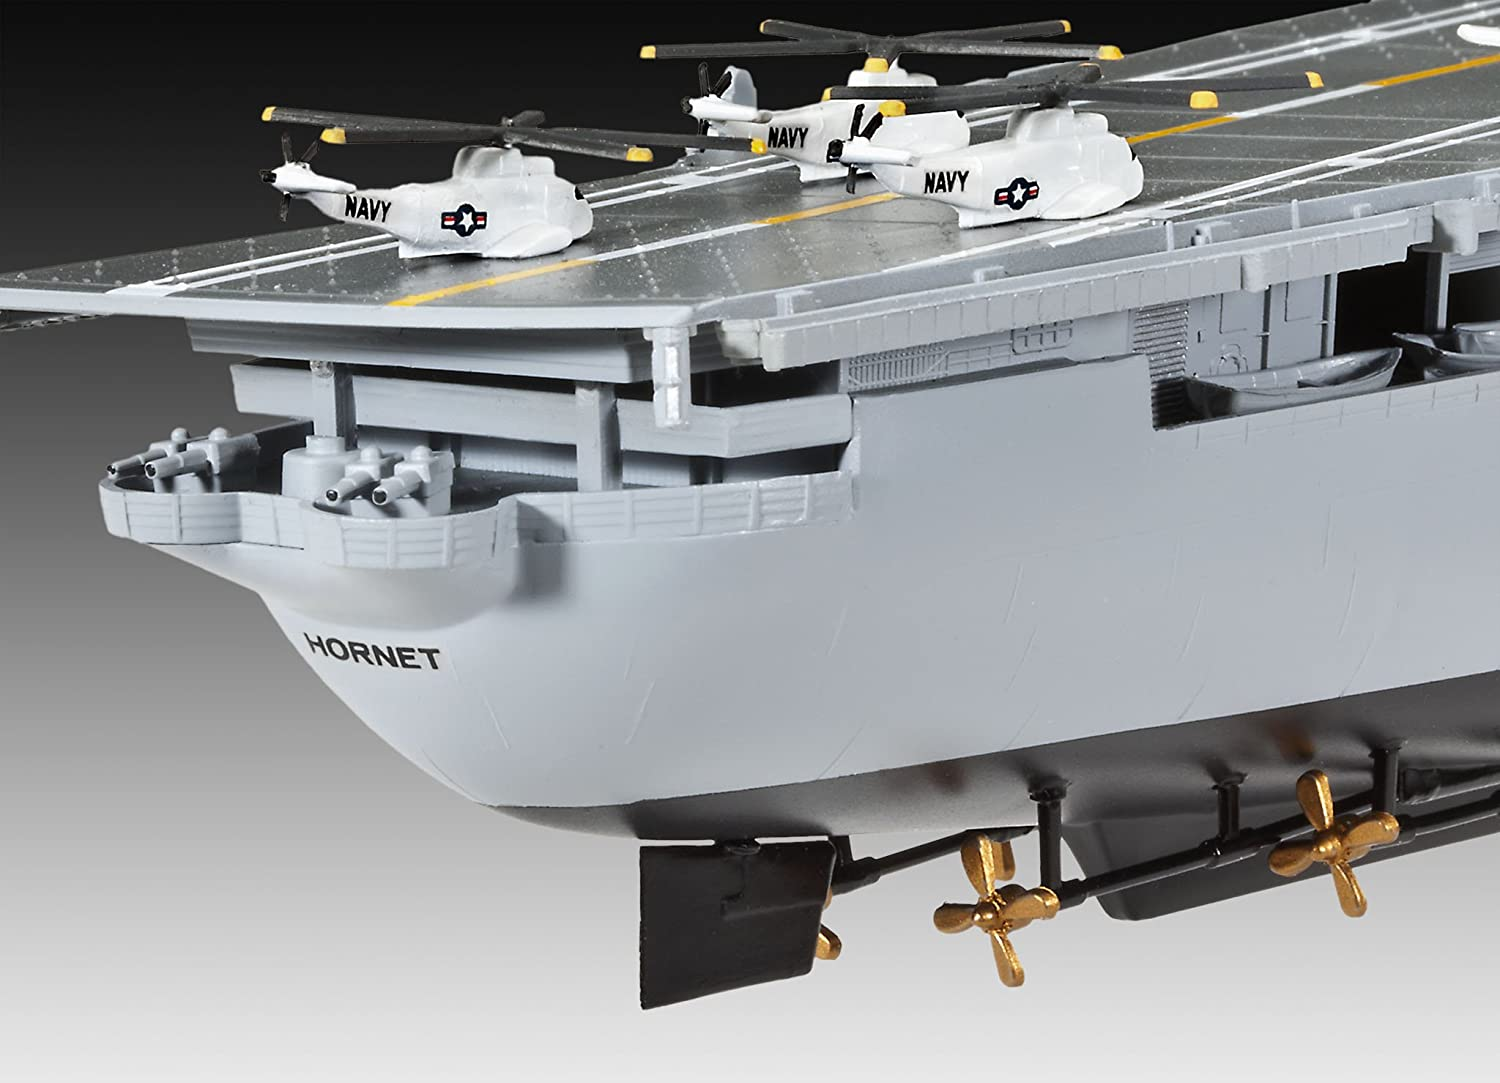 Revell 1:530 Scale U.S.S. Hornet CVS-12: Amazon.co.uk: Toys & Games